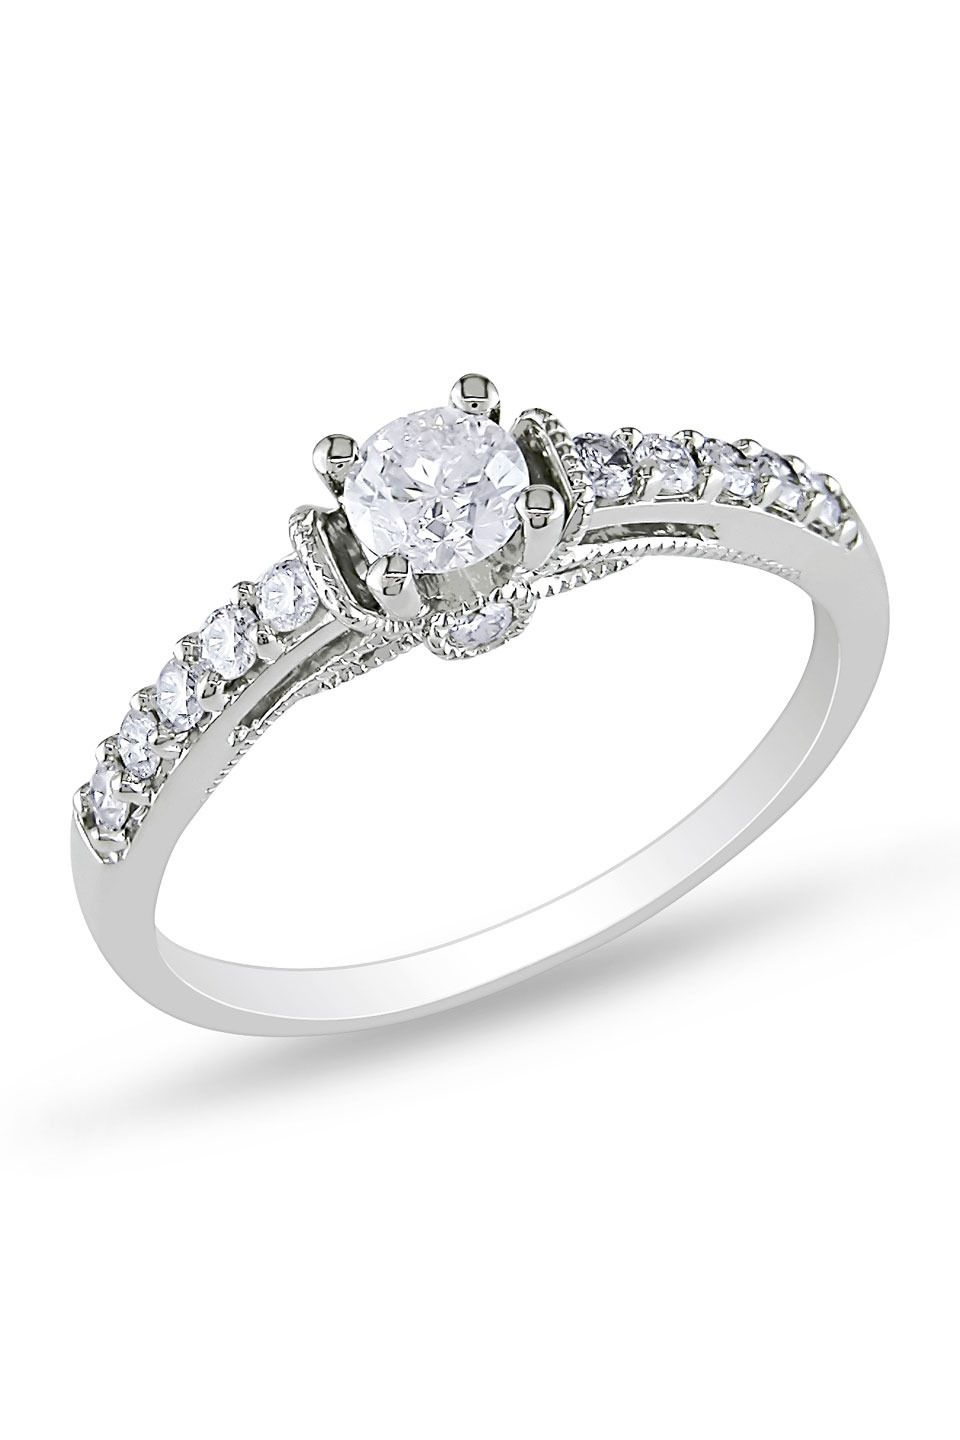 6ct Diamond Ring In 10k White Gold Engagement Ring Prices White Gold Engagement Rings Engagement Rings